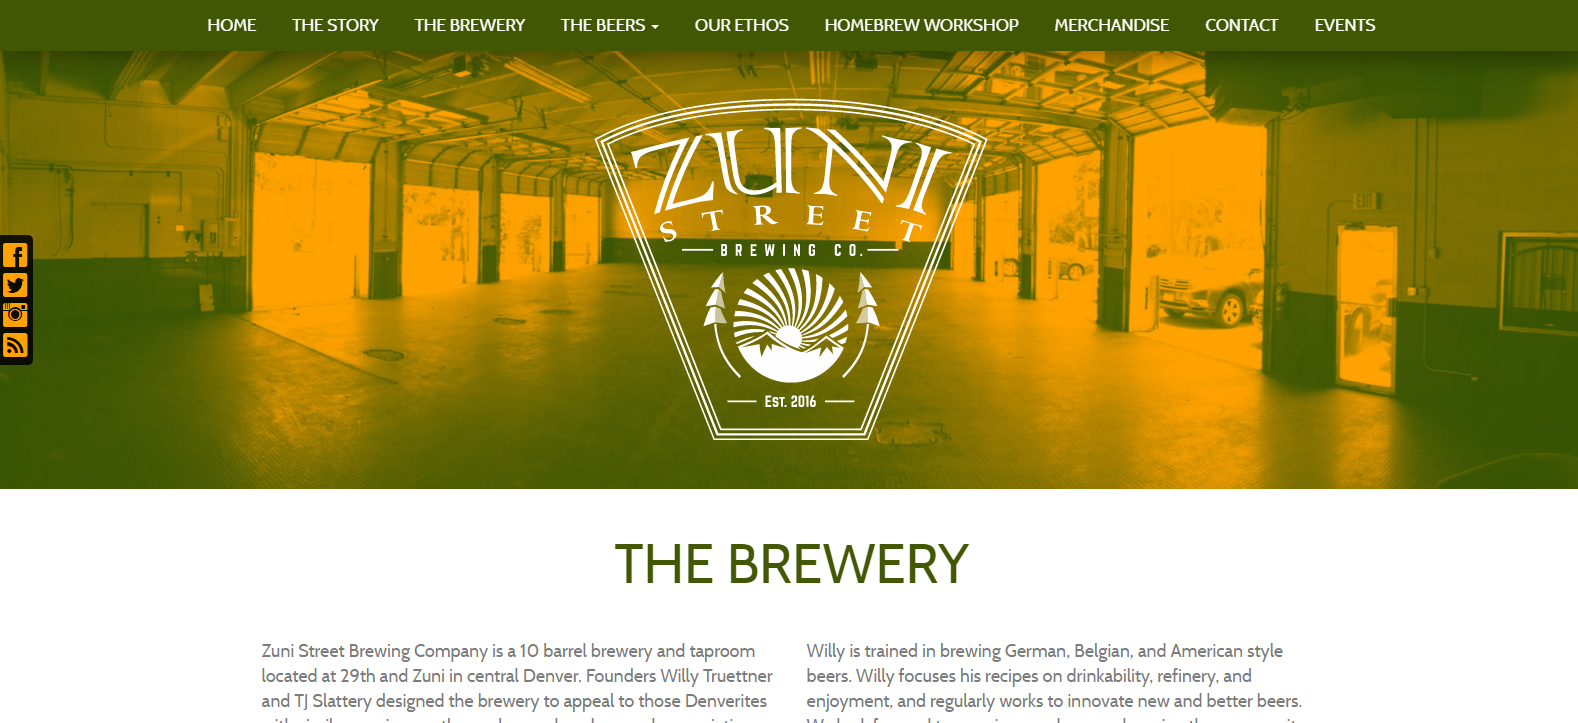 New Website Launched: Zuni Street Brewing Co.